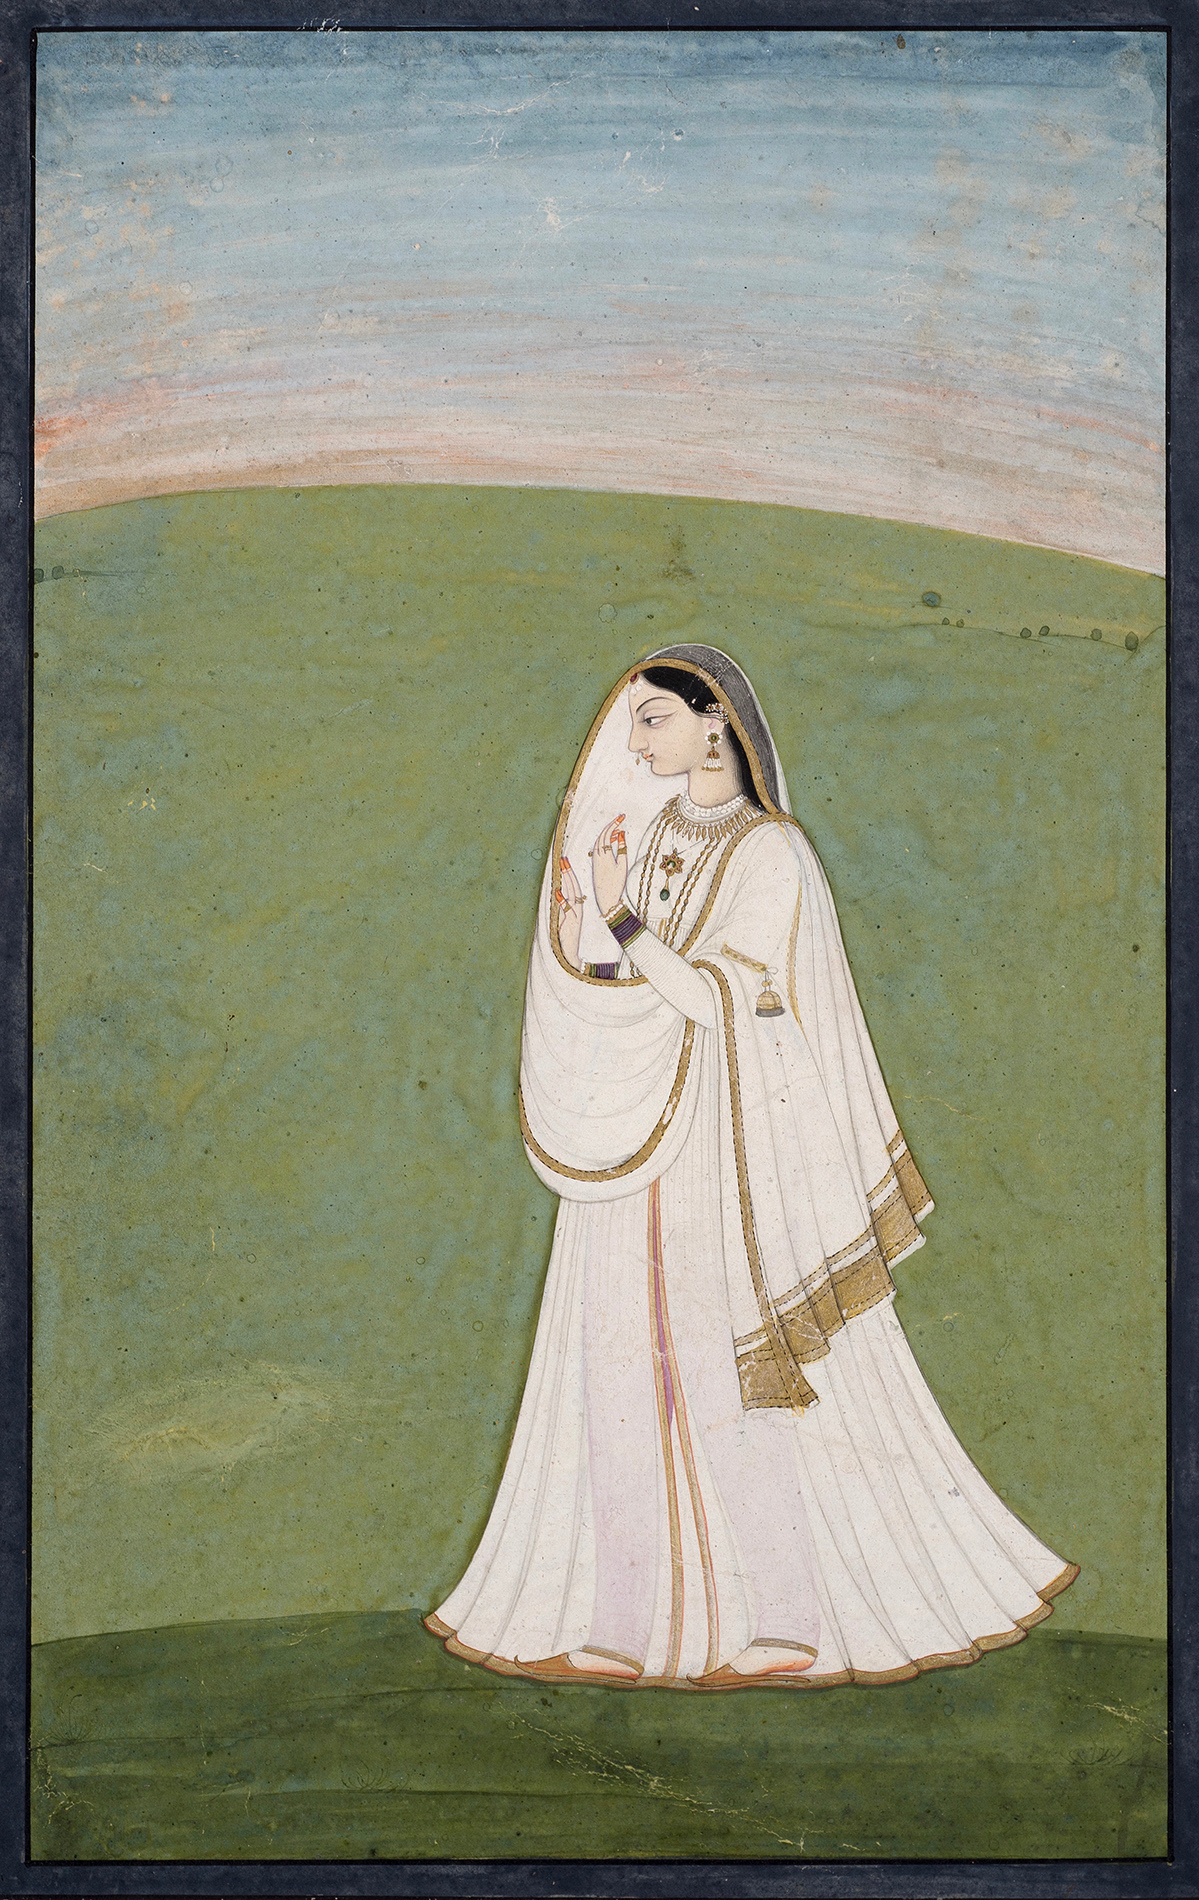 AN ILLUSTRATION TO A NAYIKA SERIES 